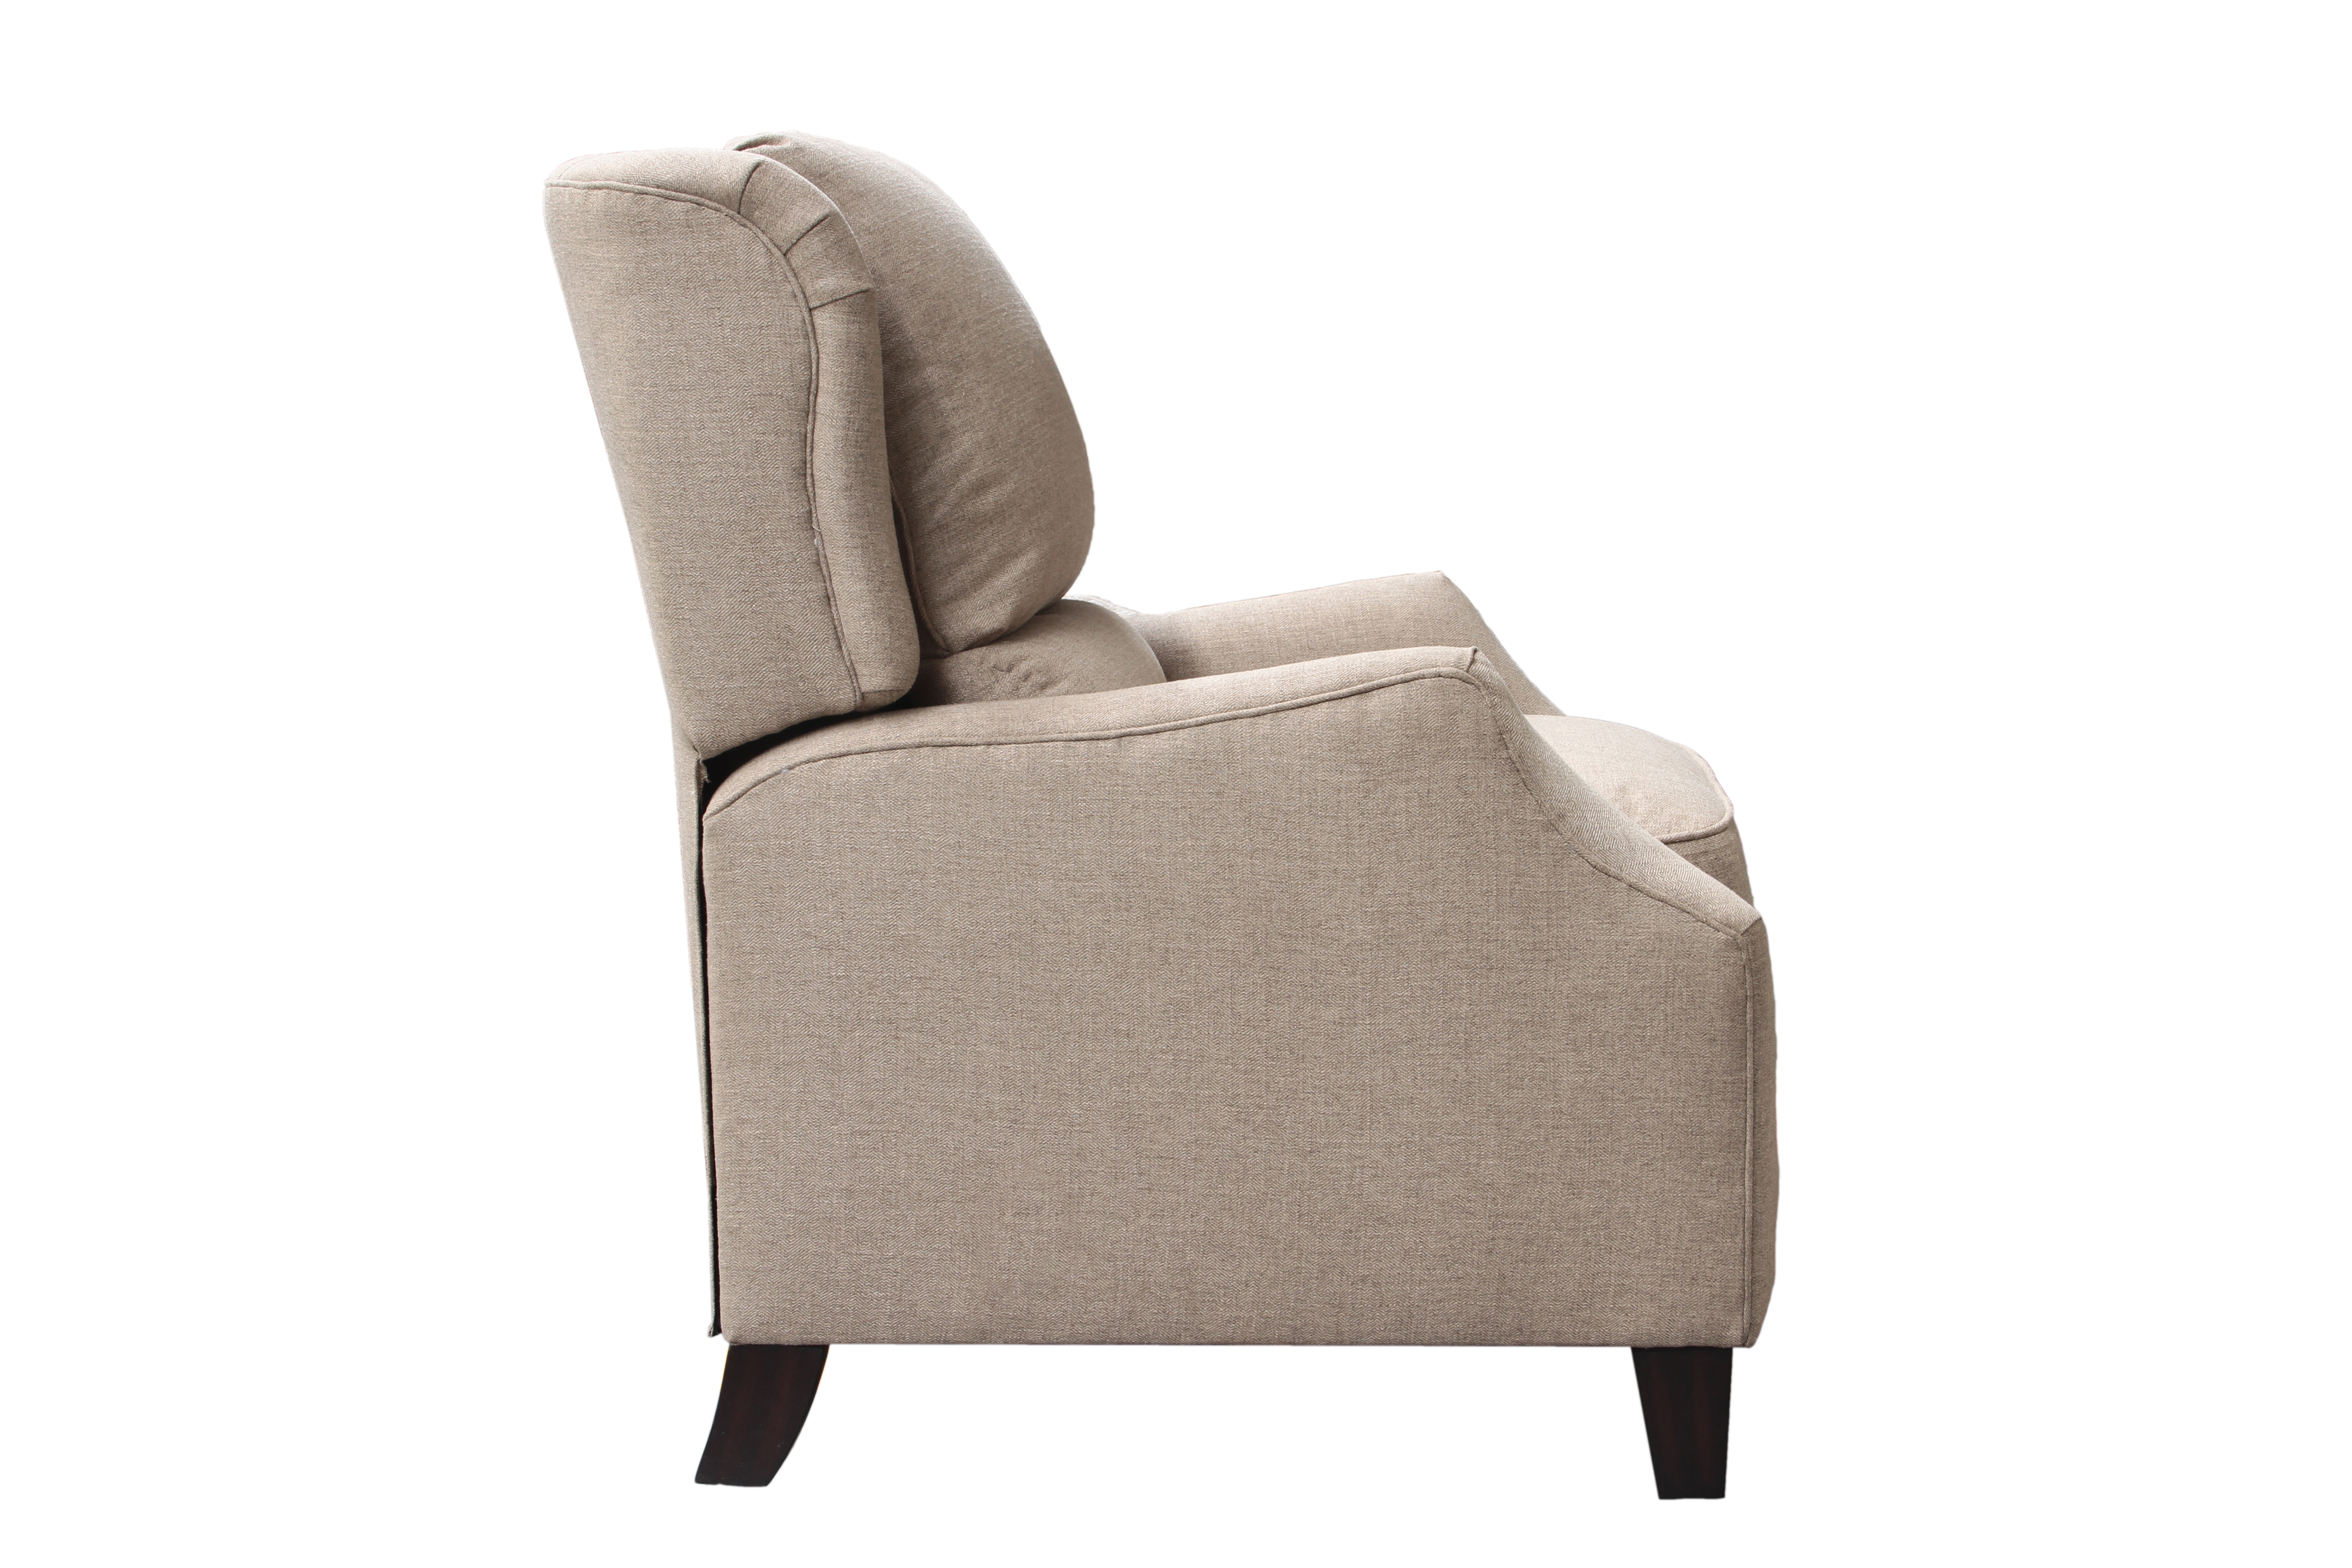 Superb Berkeley Recliner In Stock Fast Free Shipping Sofas And Dailytribune Chair Design For Home Dailytribuneorg